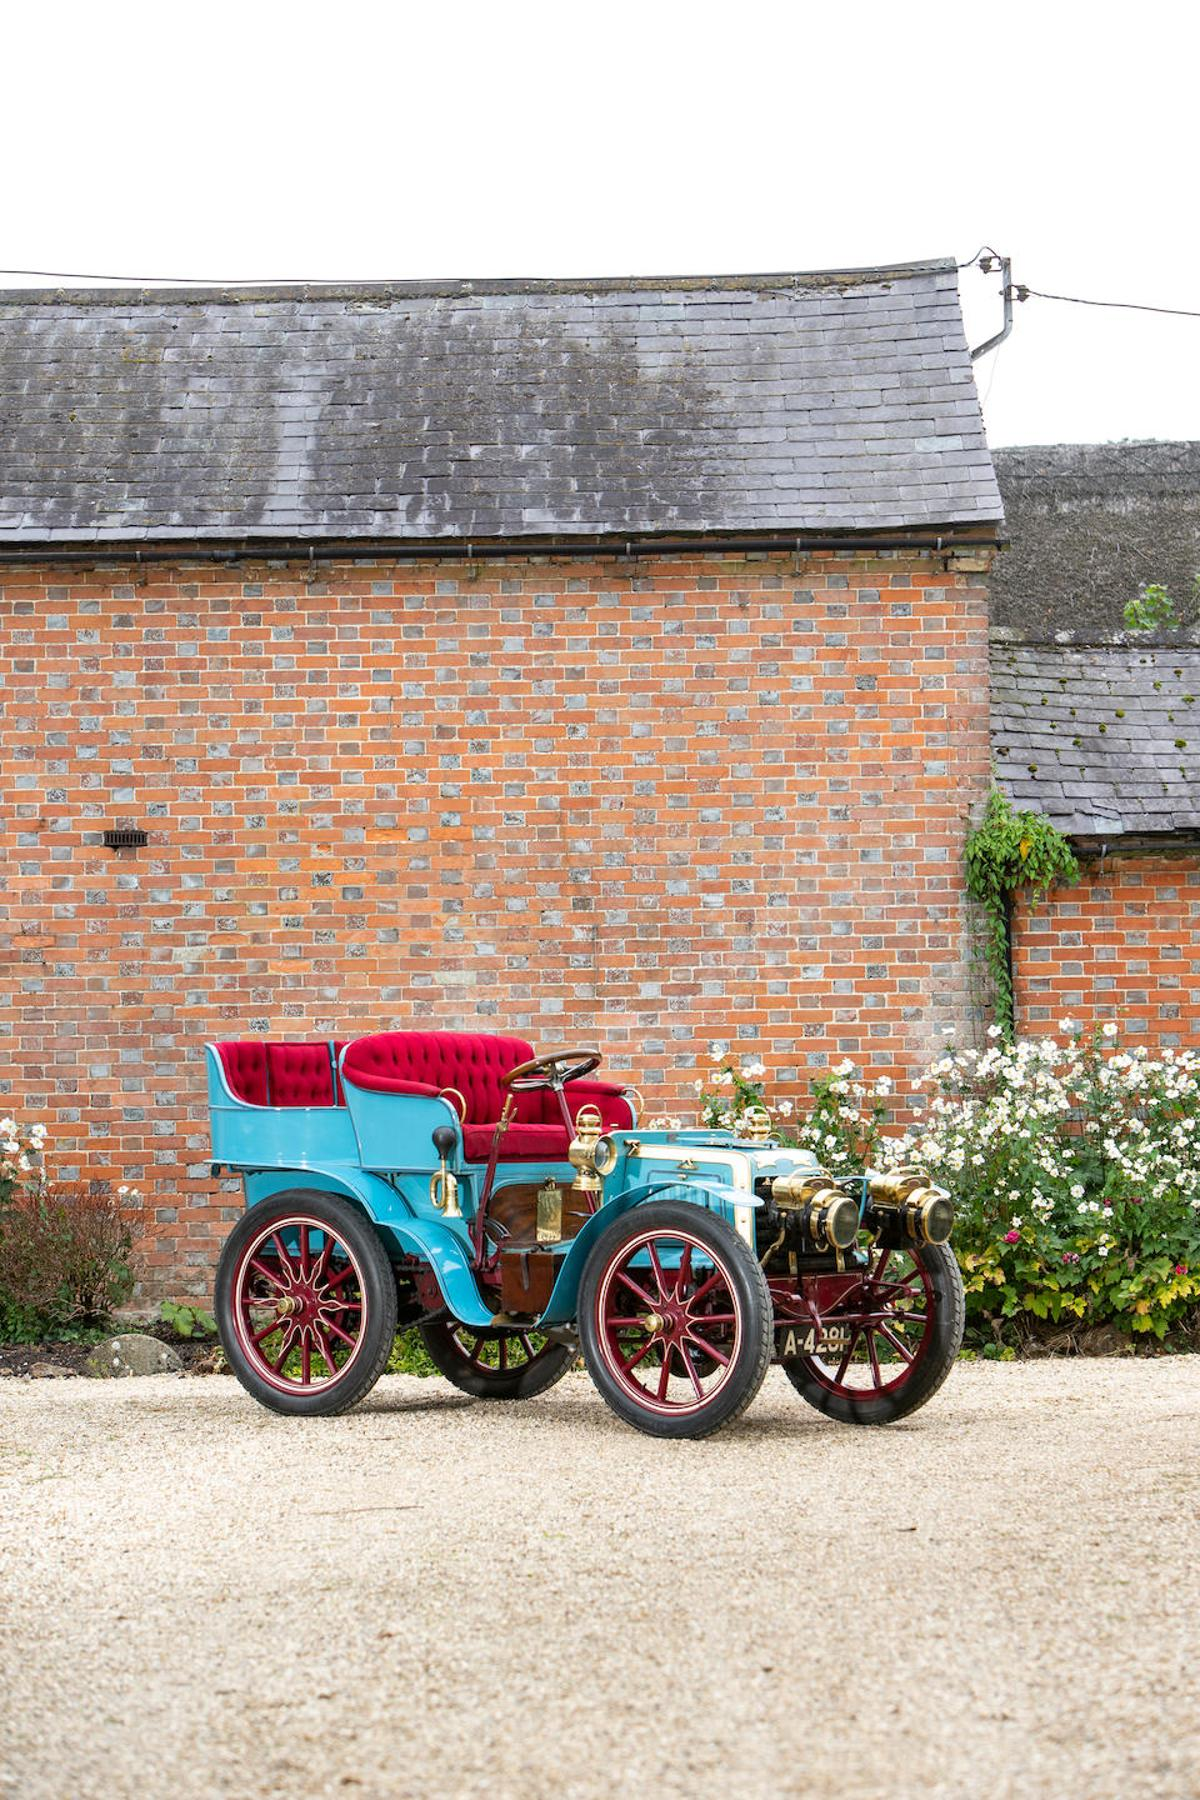 The Panhard 1901 7hp is one of the world' first modern motor cars